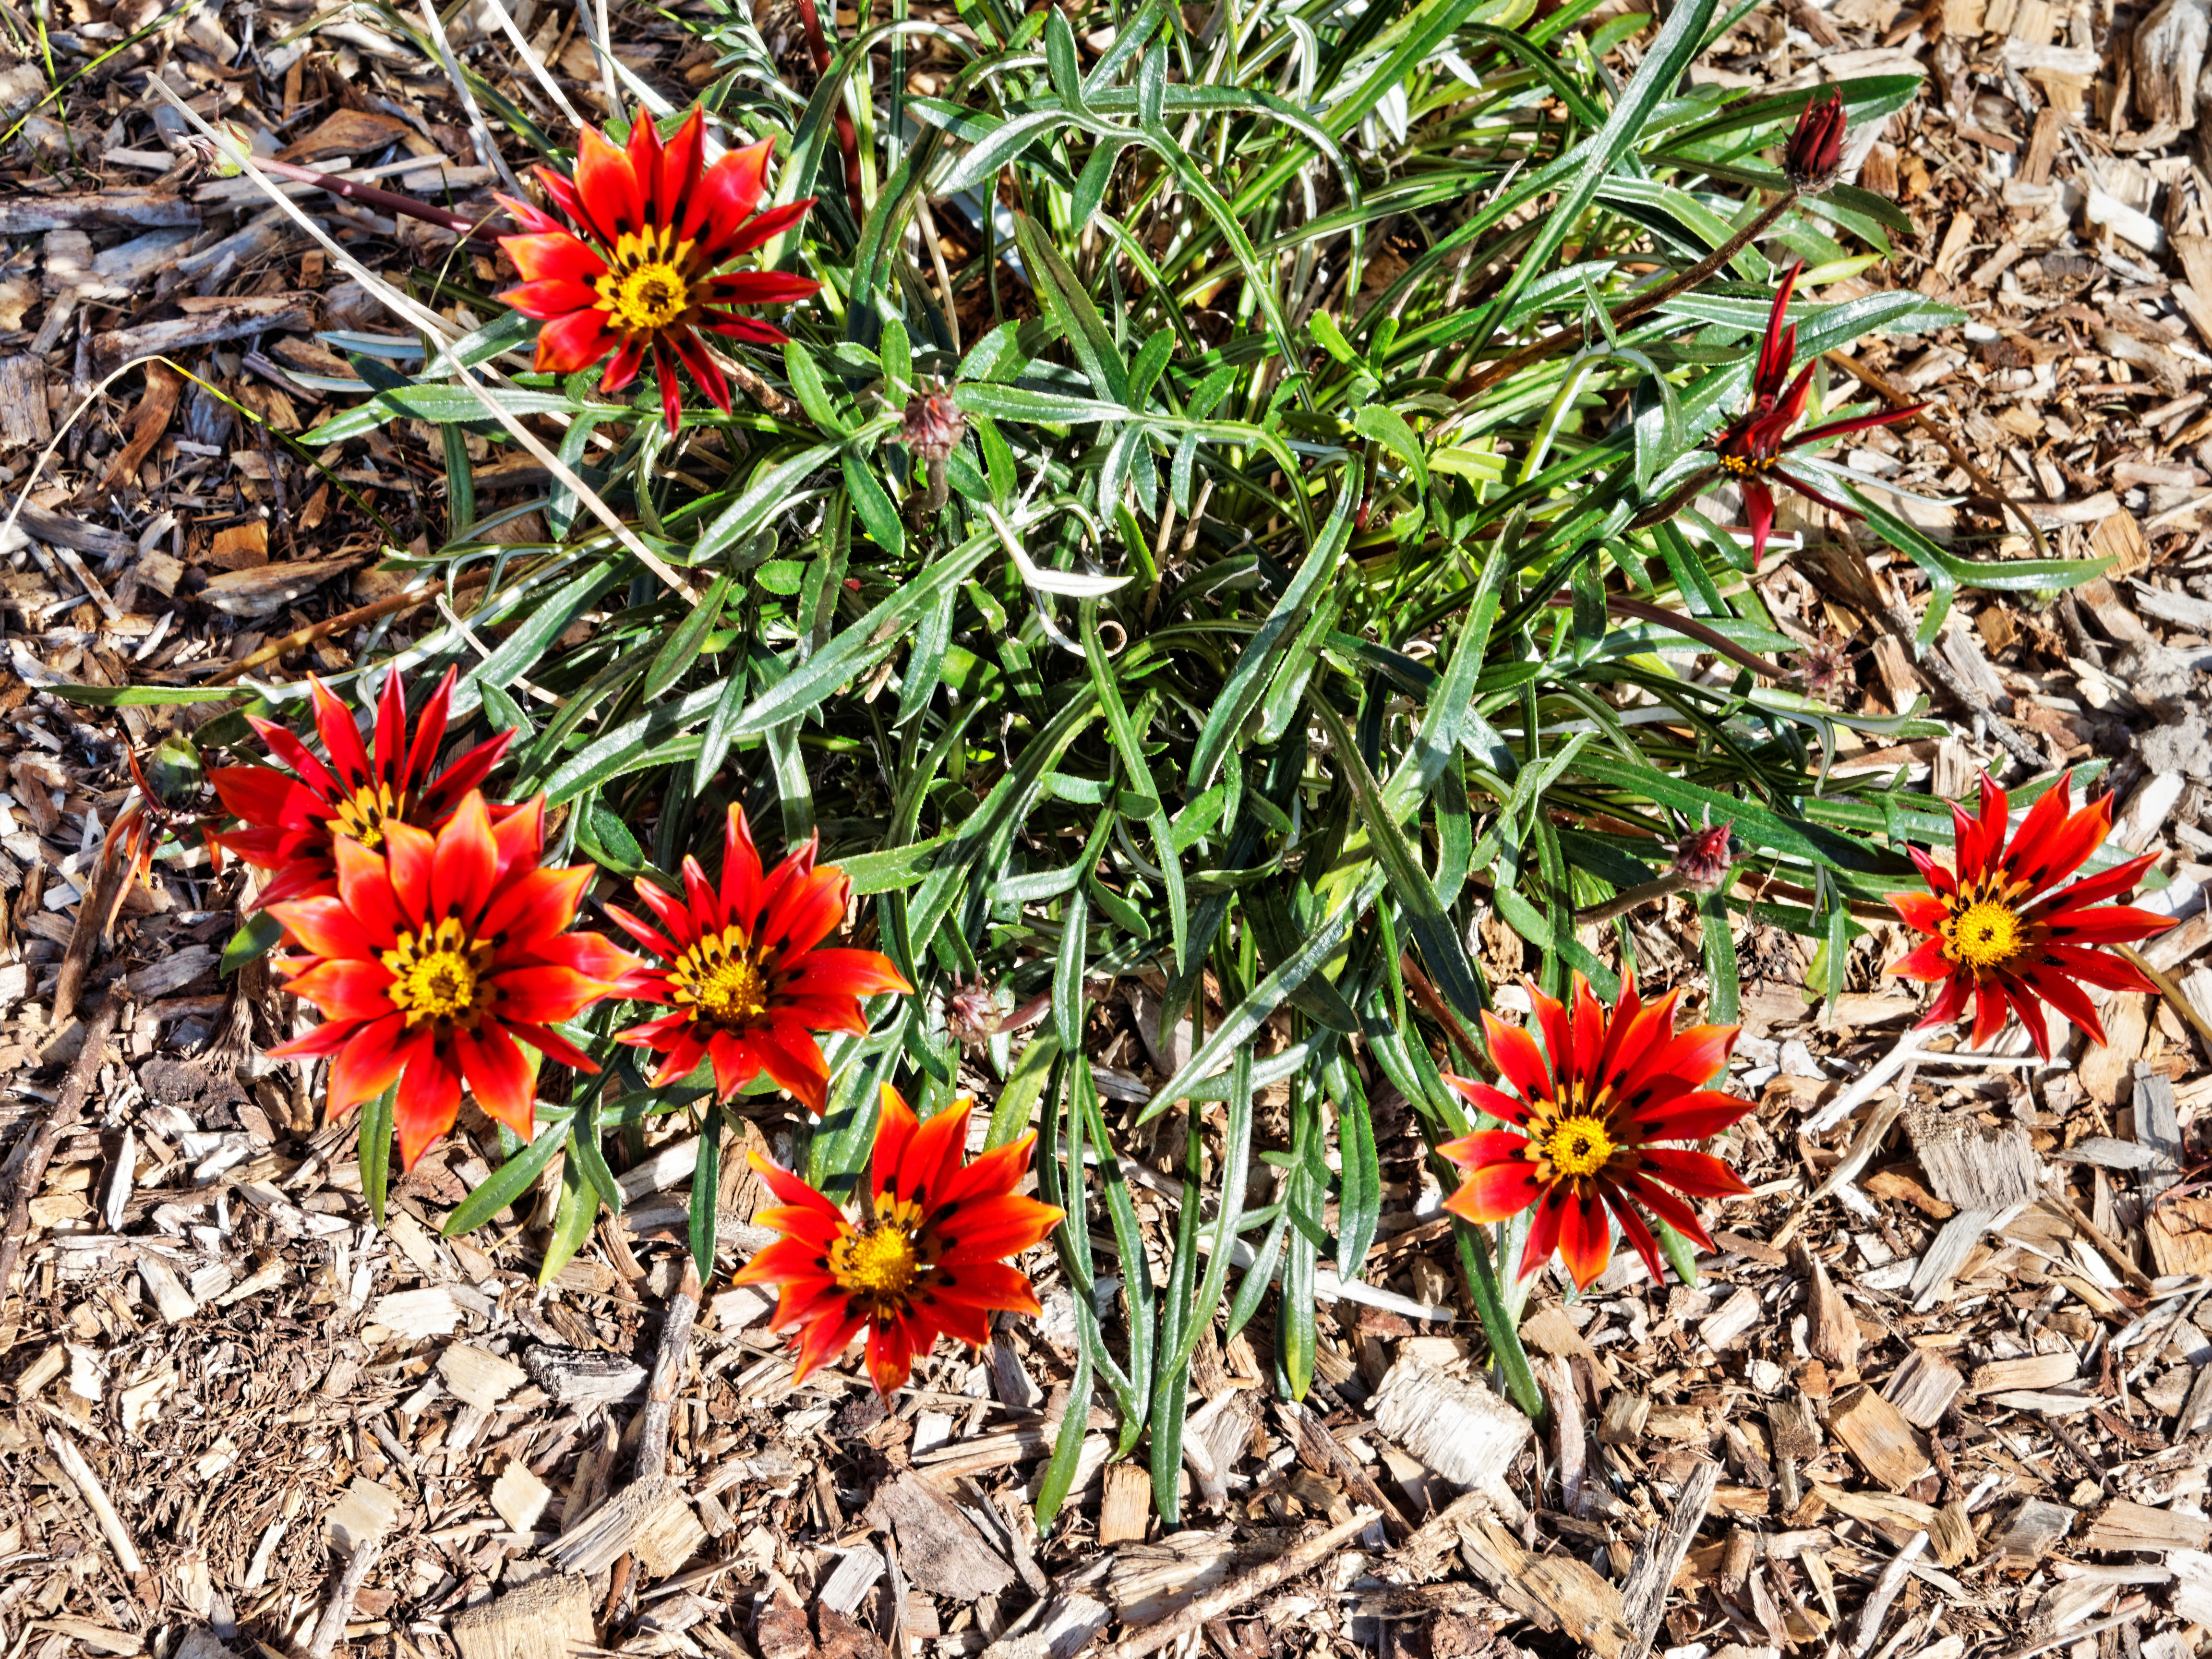 This should be Gazanias.jpeg.  Is it missing?